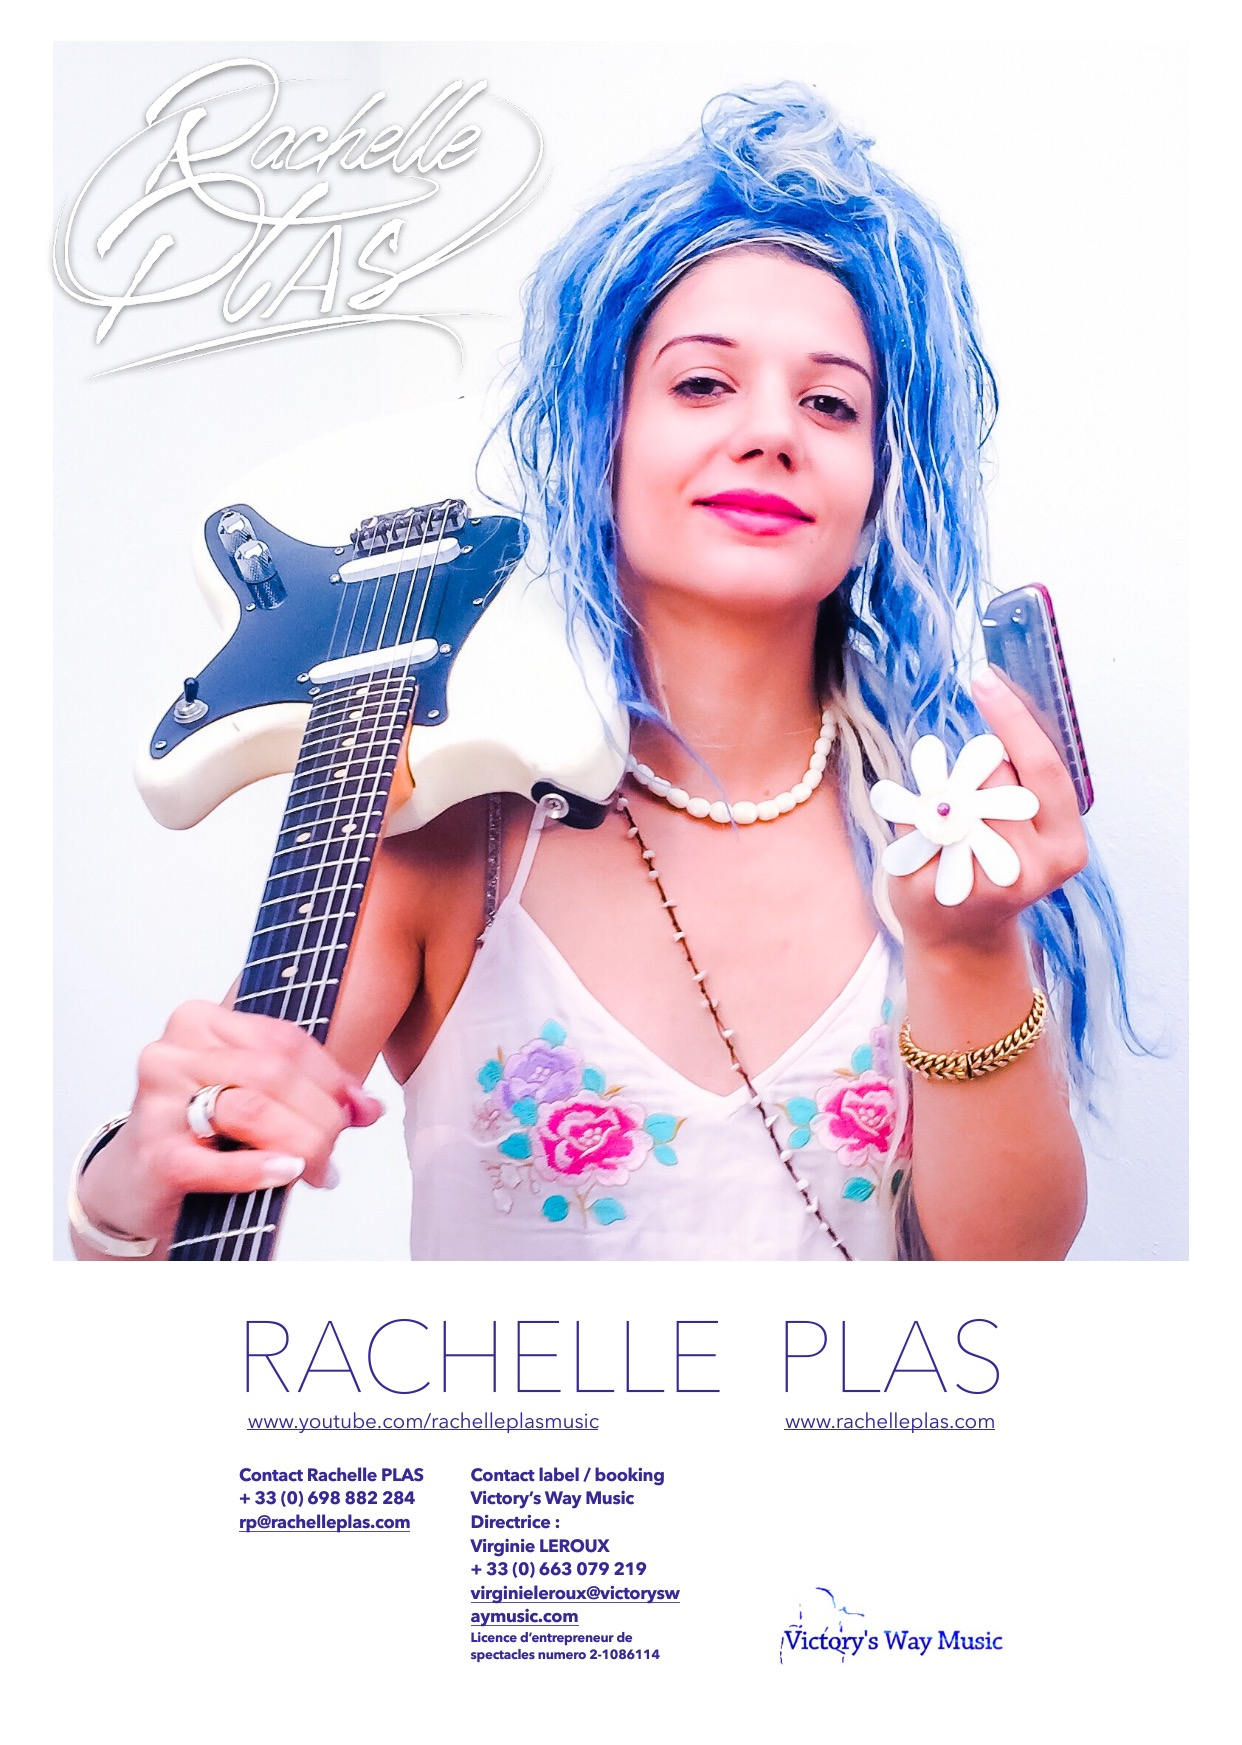 Rachelle PLAS - conception RC.HERE